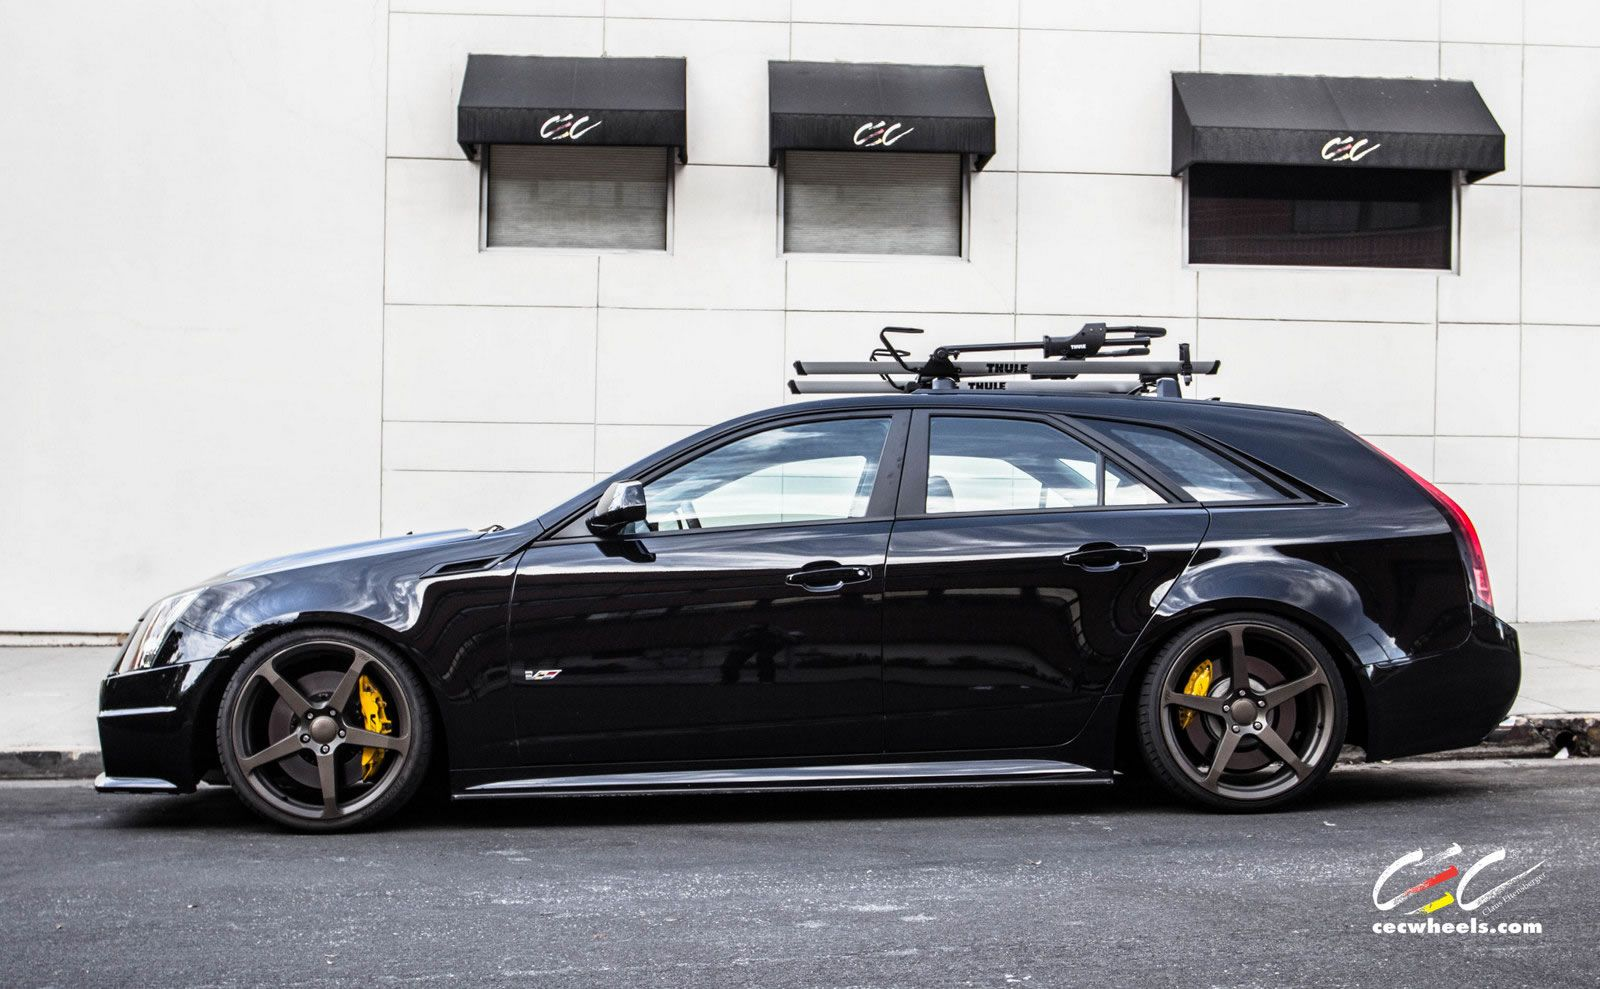 Cadillac Cts V Wagon For Sale >> Cadillac Cts V Wagon With Staggered 20 Hot Rods Cts V Wagon